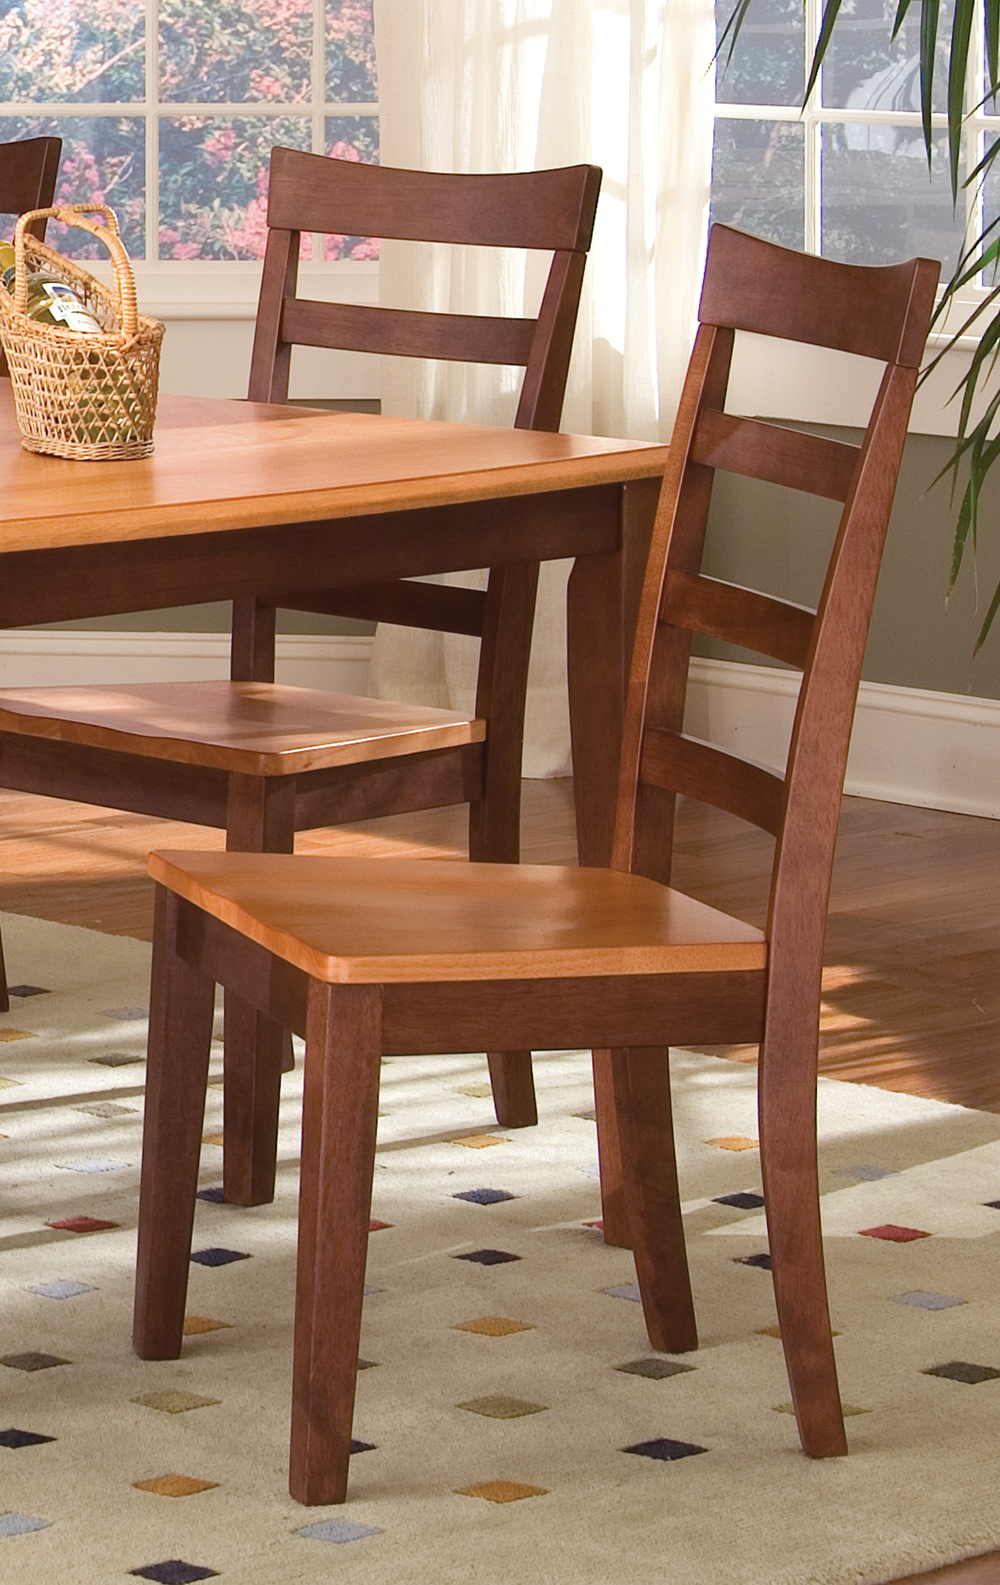 Get Free High Quality HD Wallpapers Bristol Point 7 Piece Dining Set